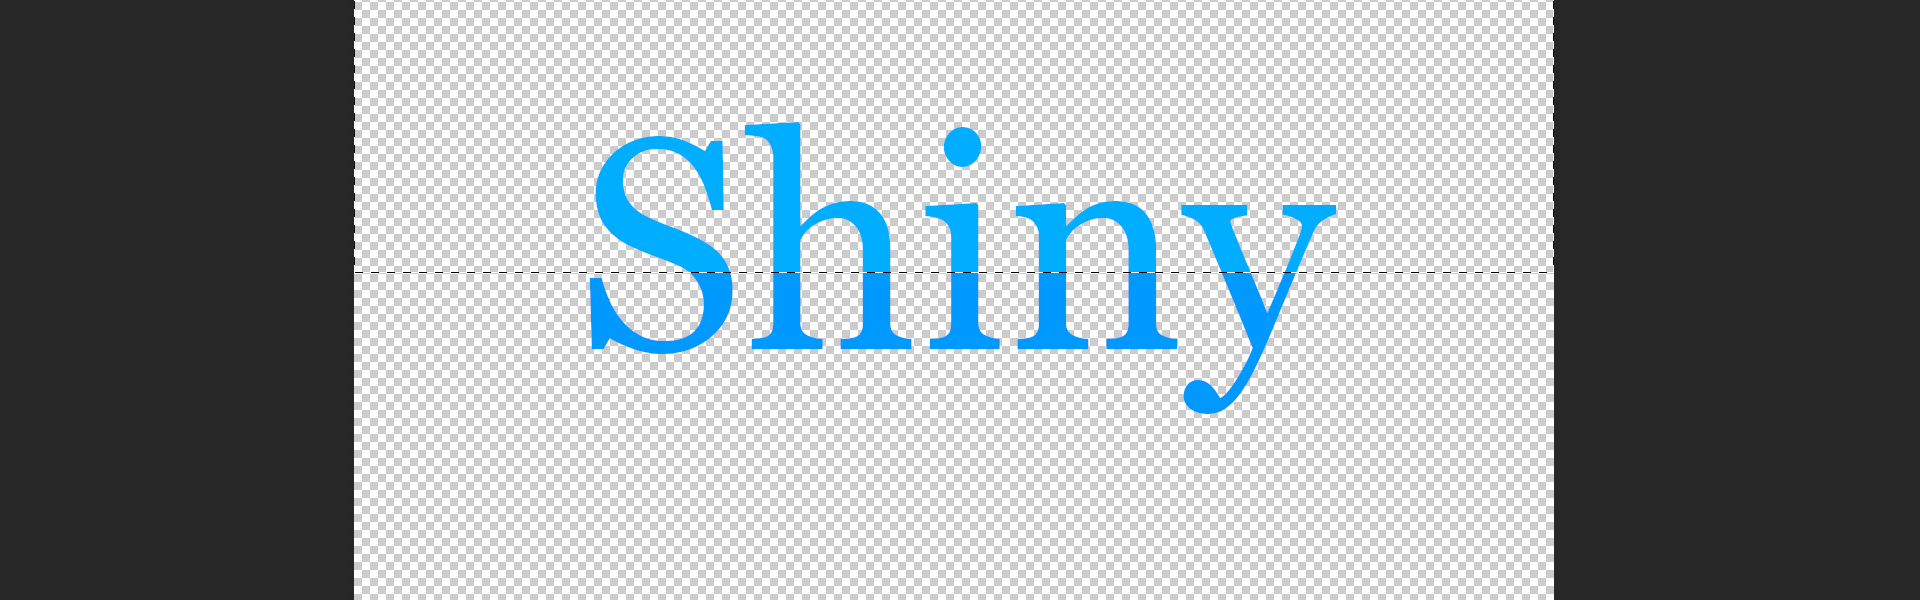 Shiny Text: Step 4